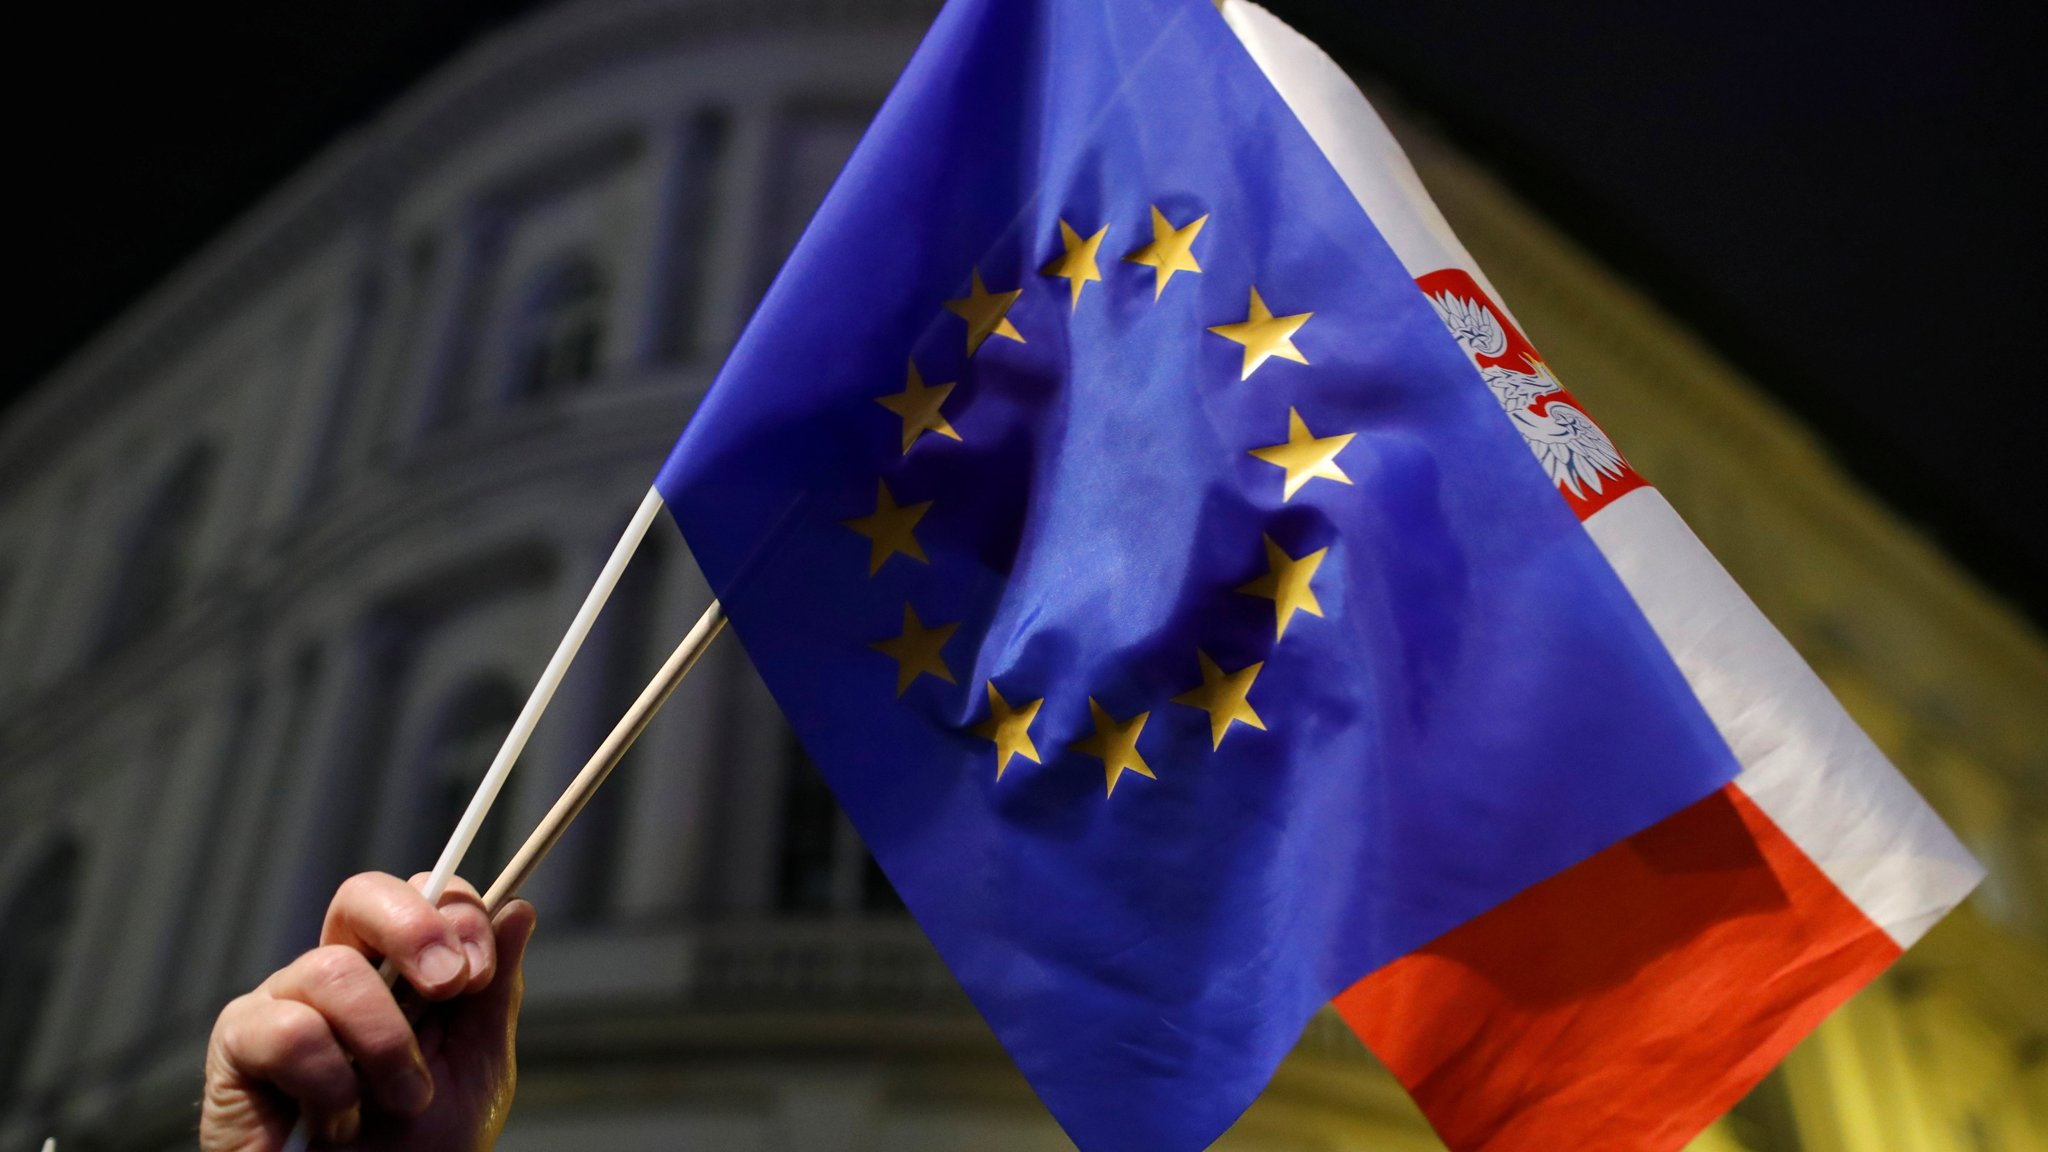 EU rebukes Poland over judiciary reforms